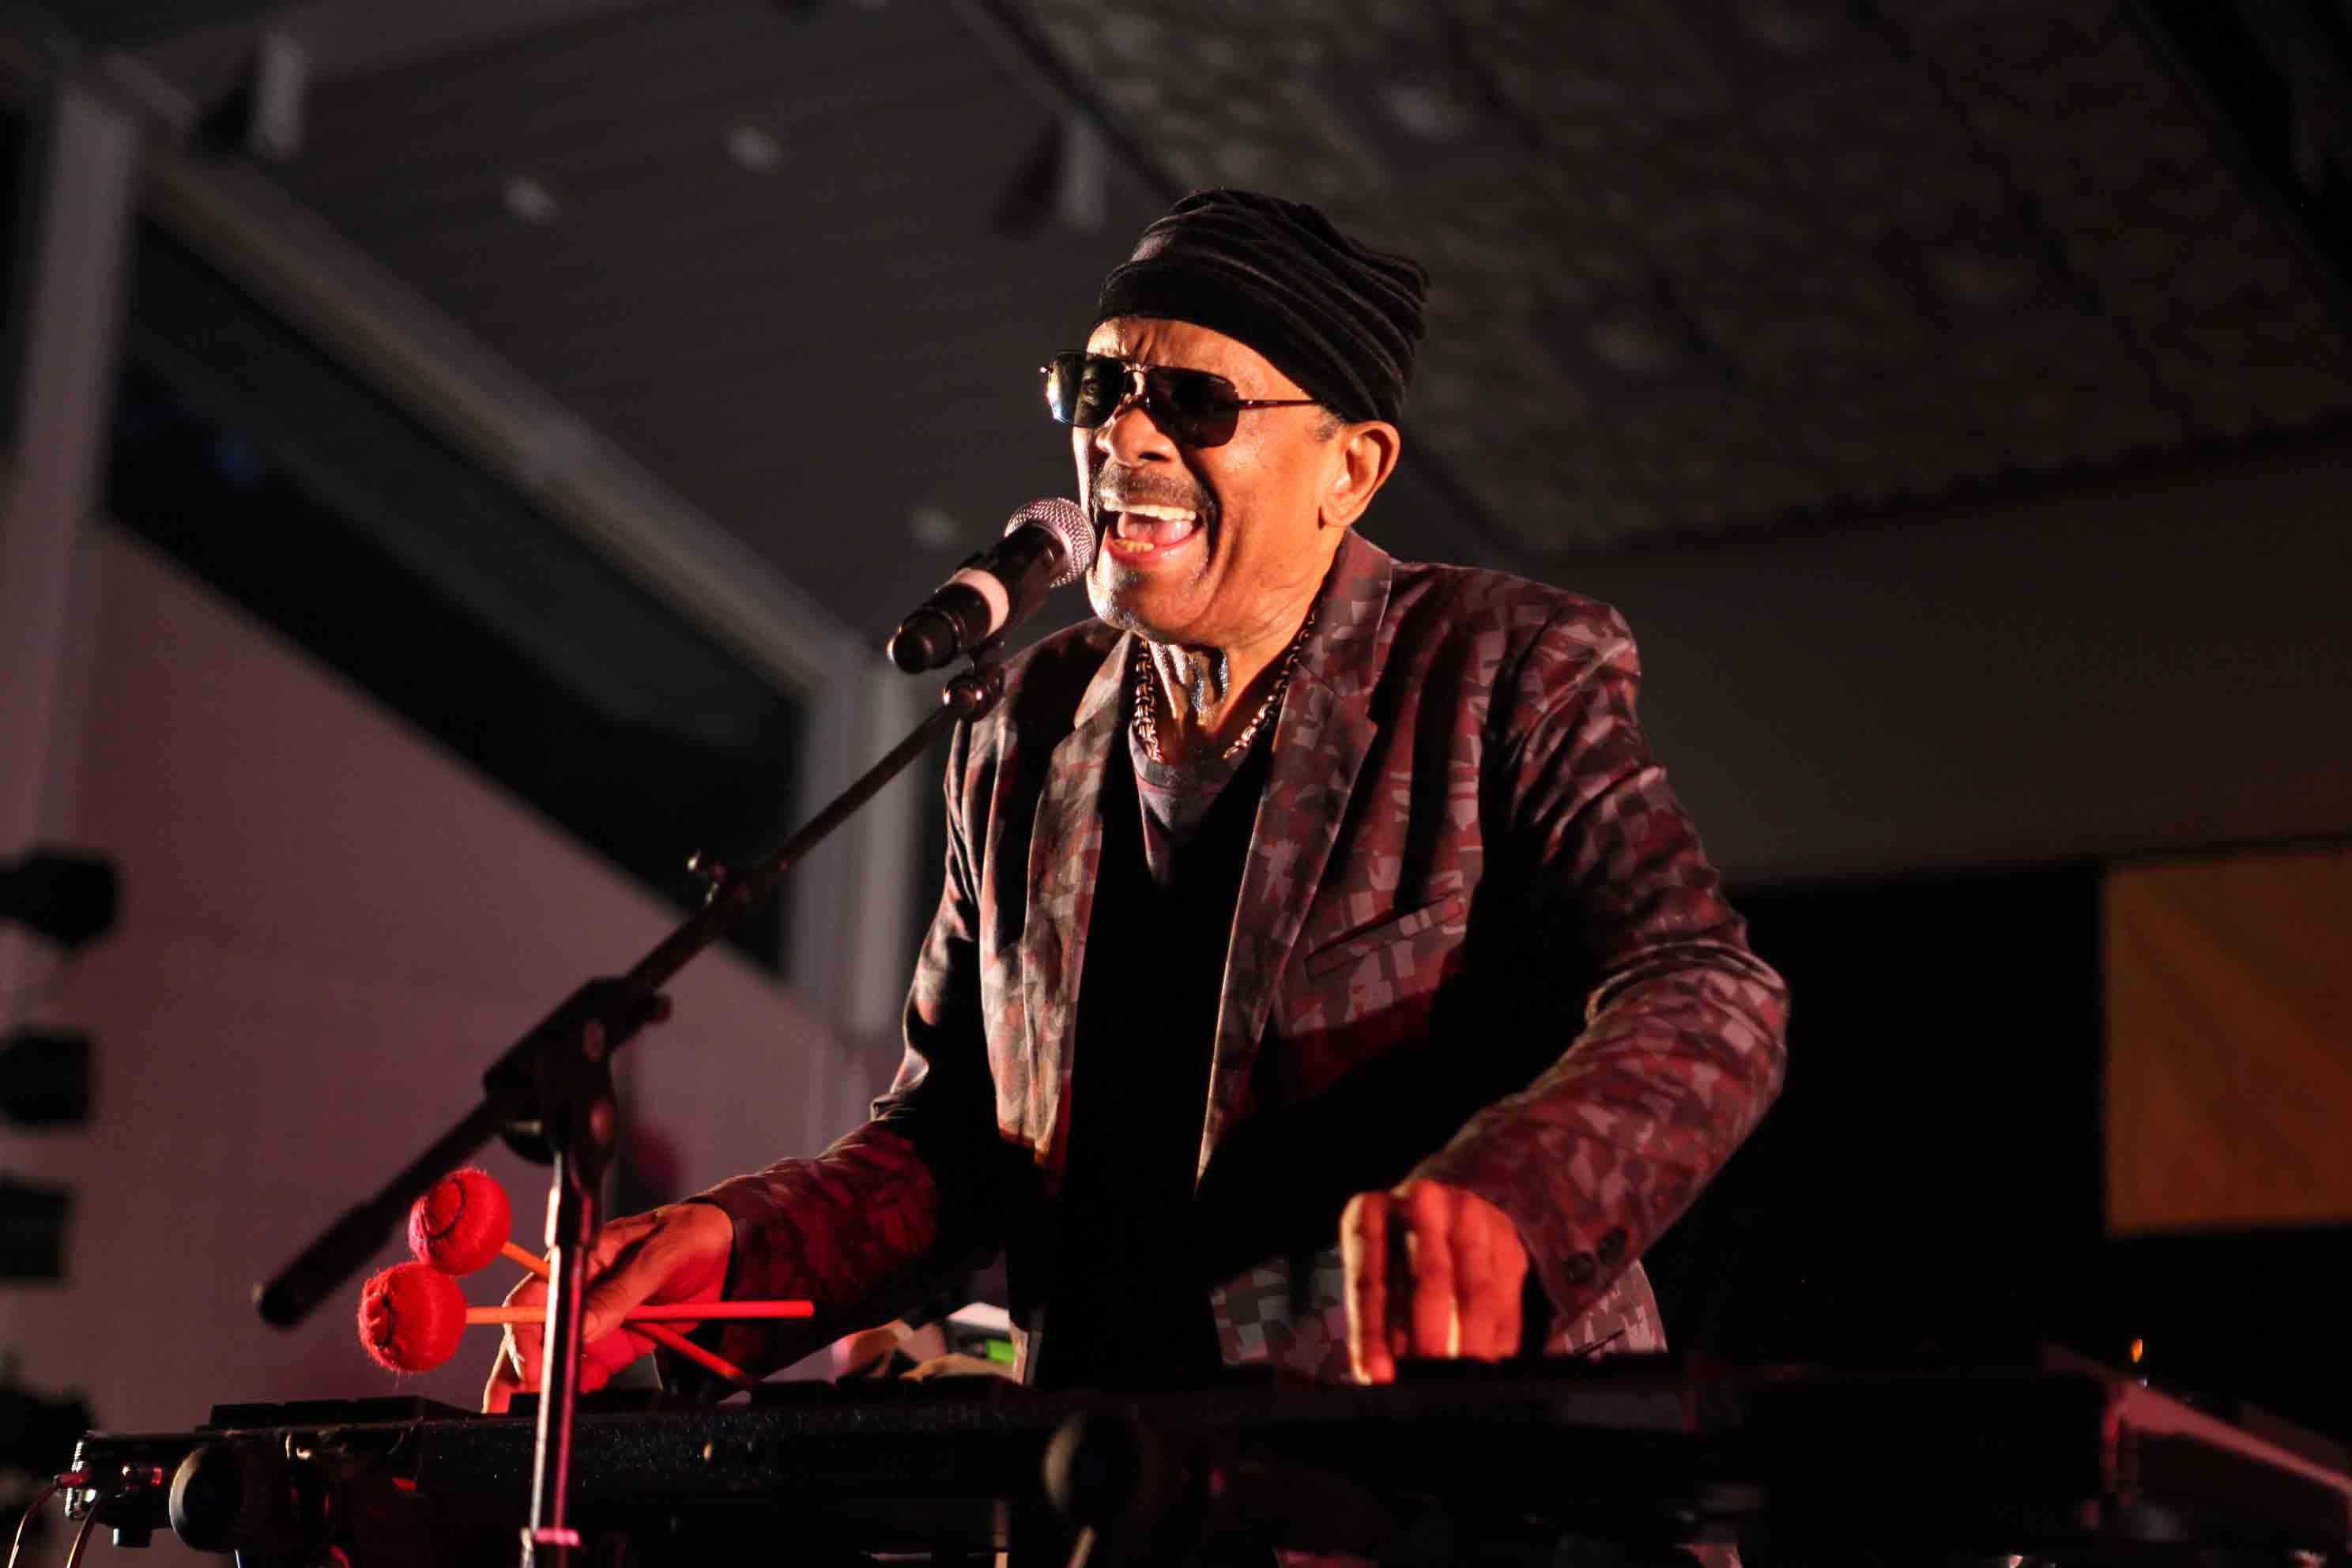 Roy Ayers performing live at Marcus Garvey Park